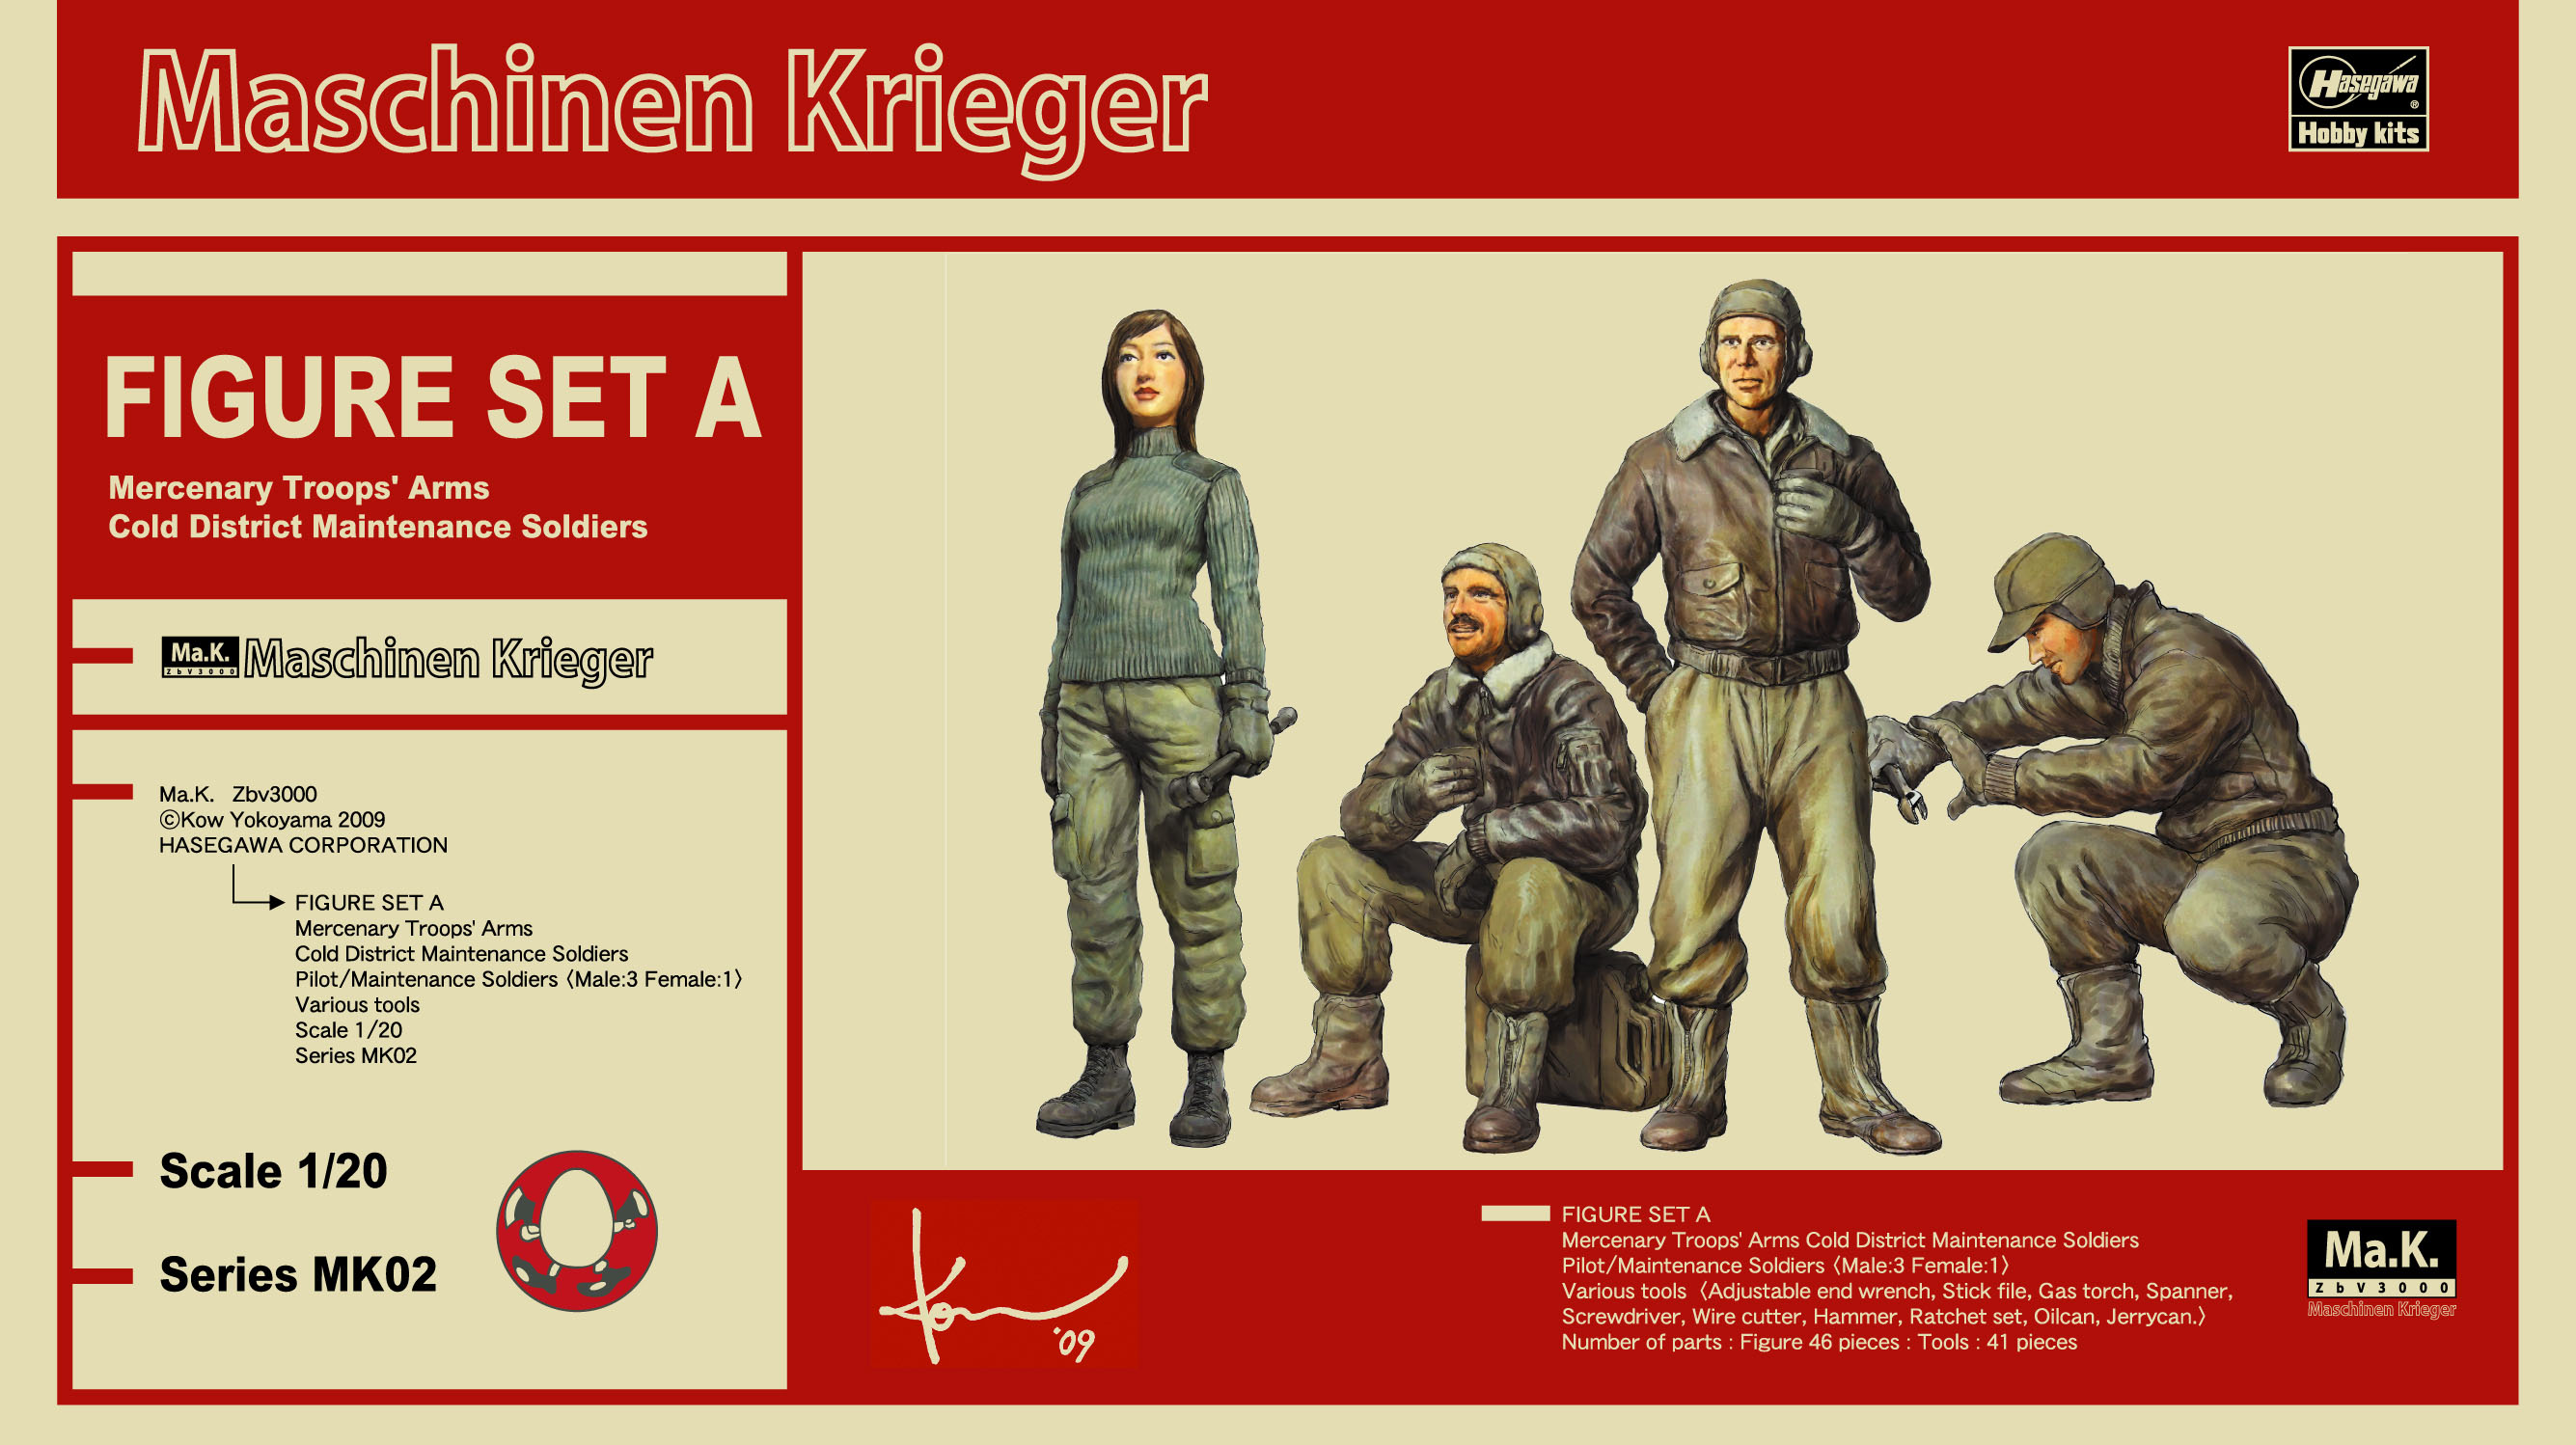 Hasegawa 1/20 Ma.K. Figure Set A (Mercenary Troops' Arms Cold District Maintenance Soldiers) MK02